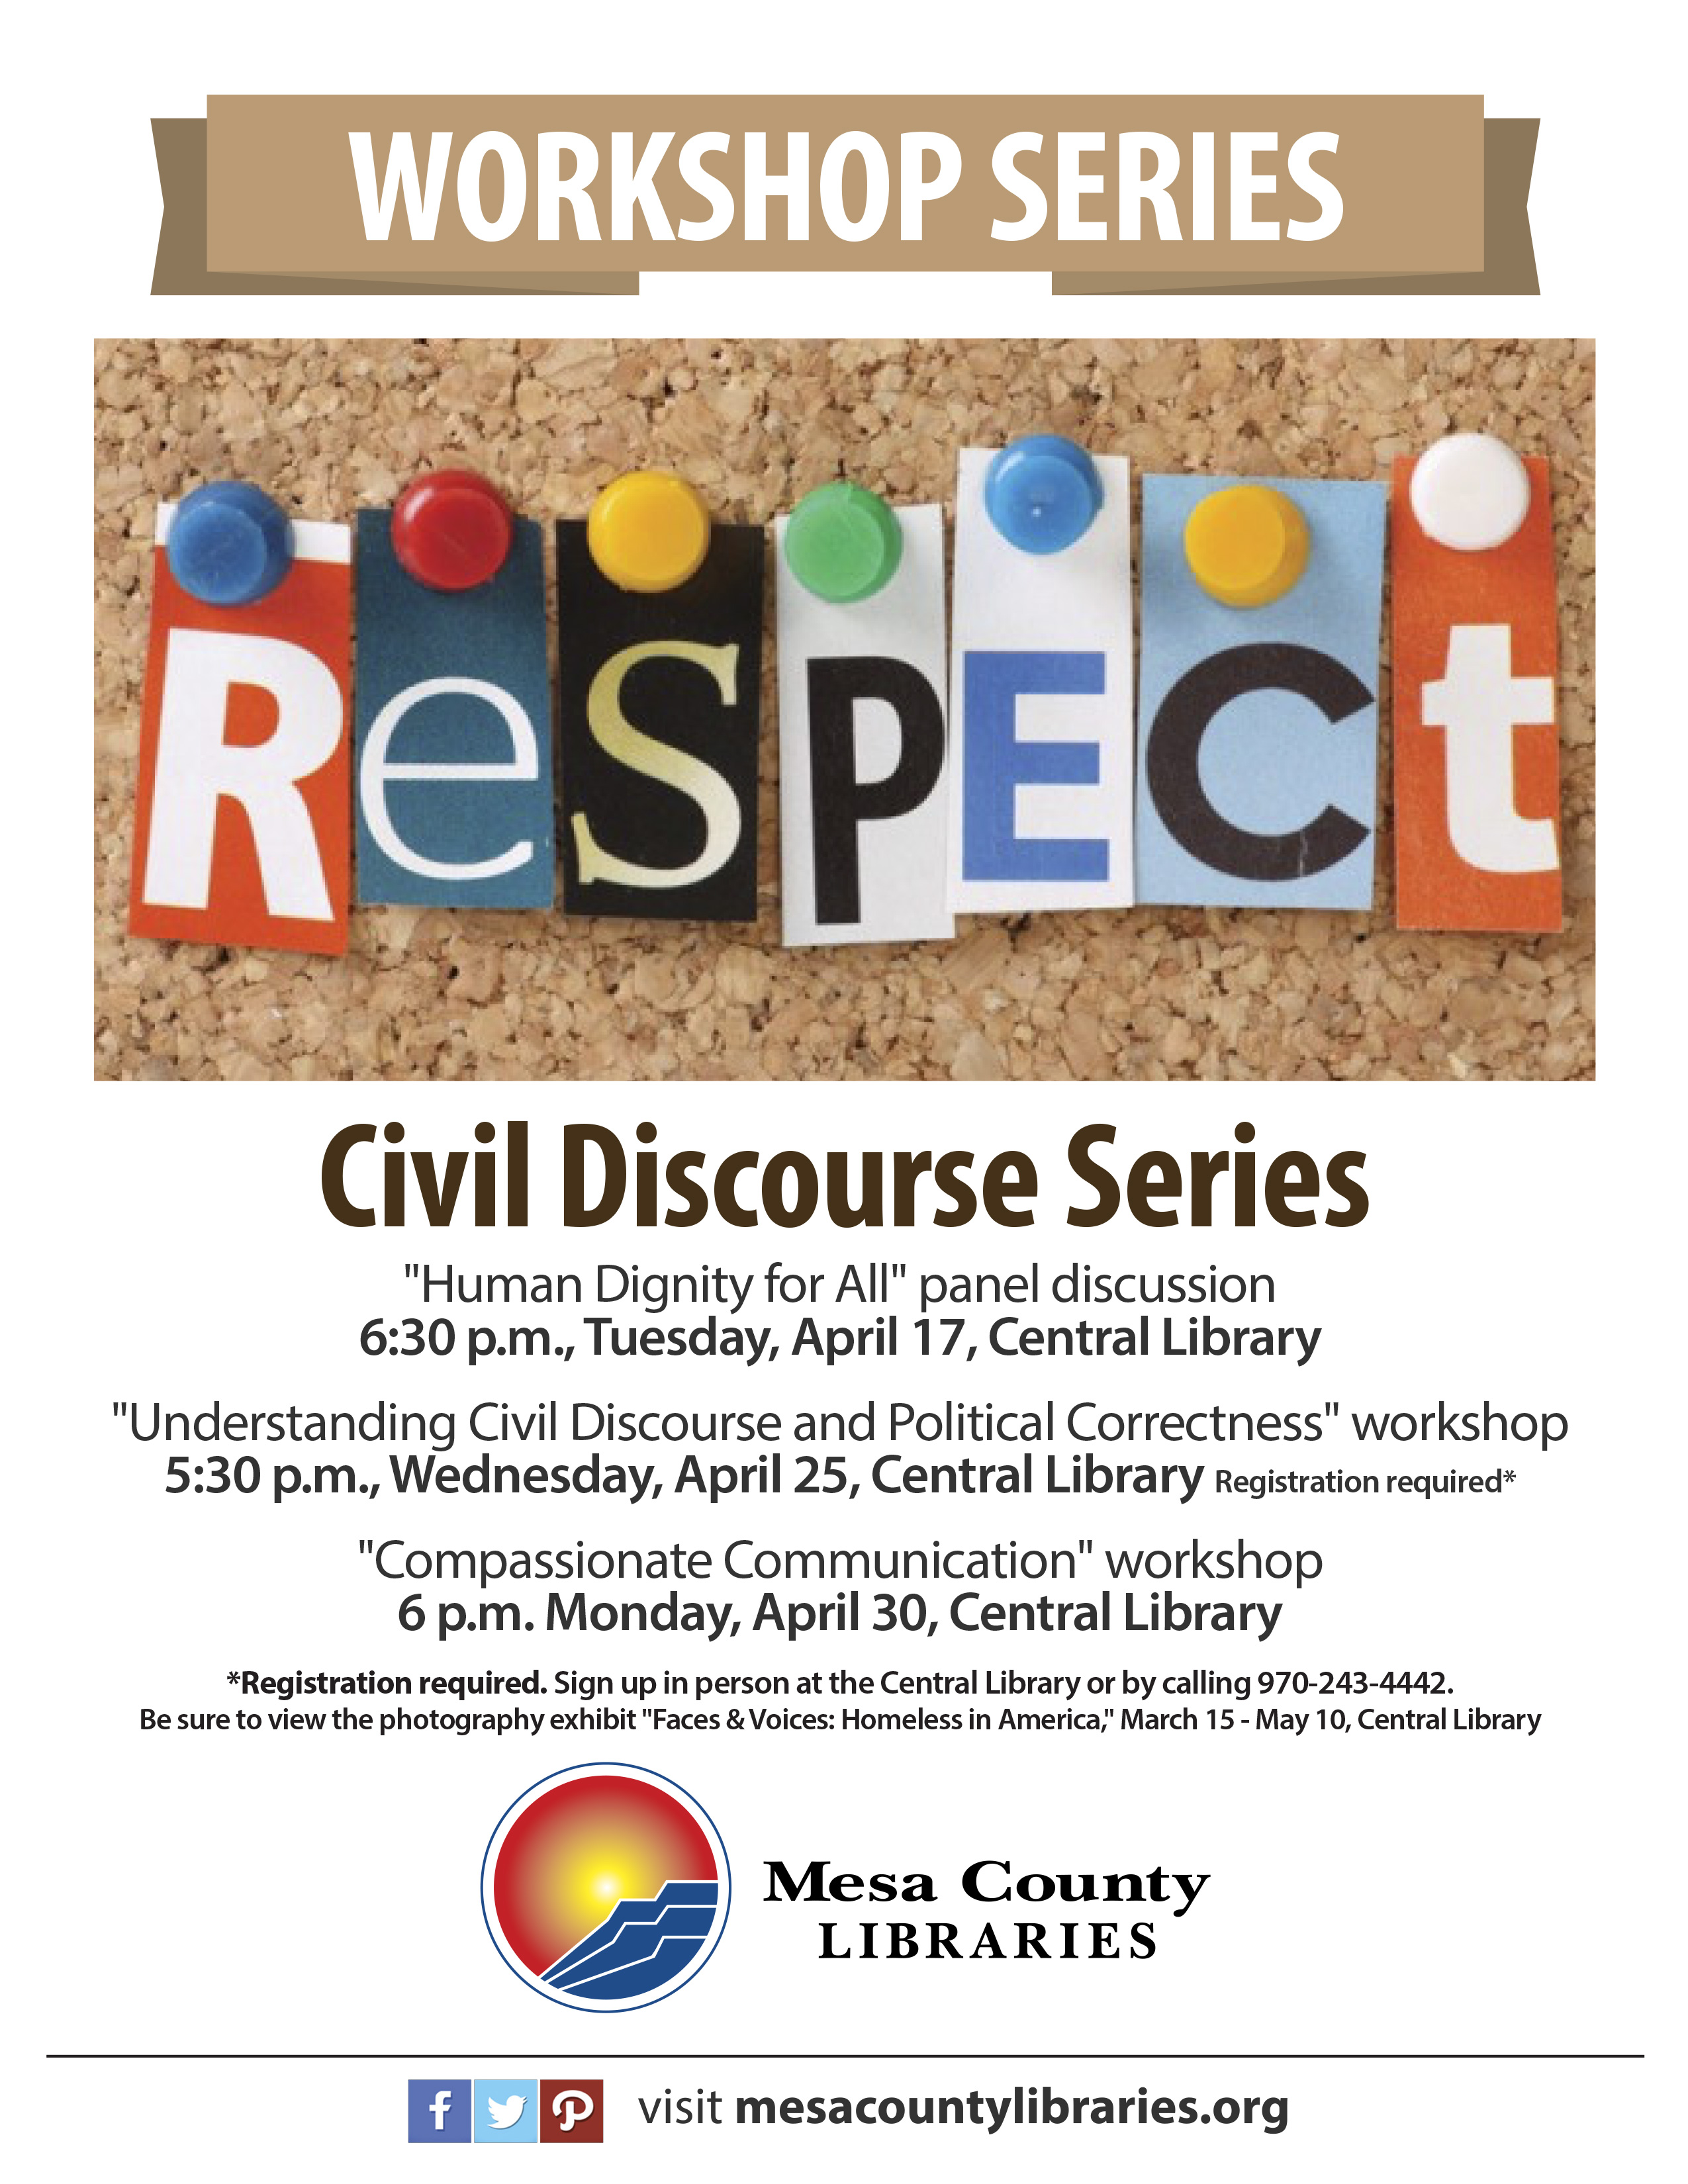 Civil Discourse Event Series: Understanding Civil Discourse and Political Correctness Exploration